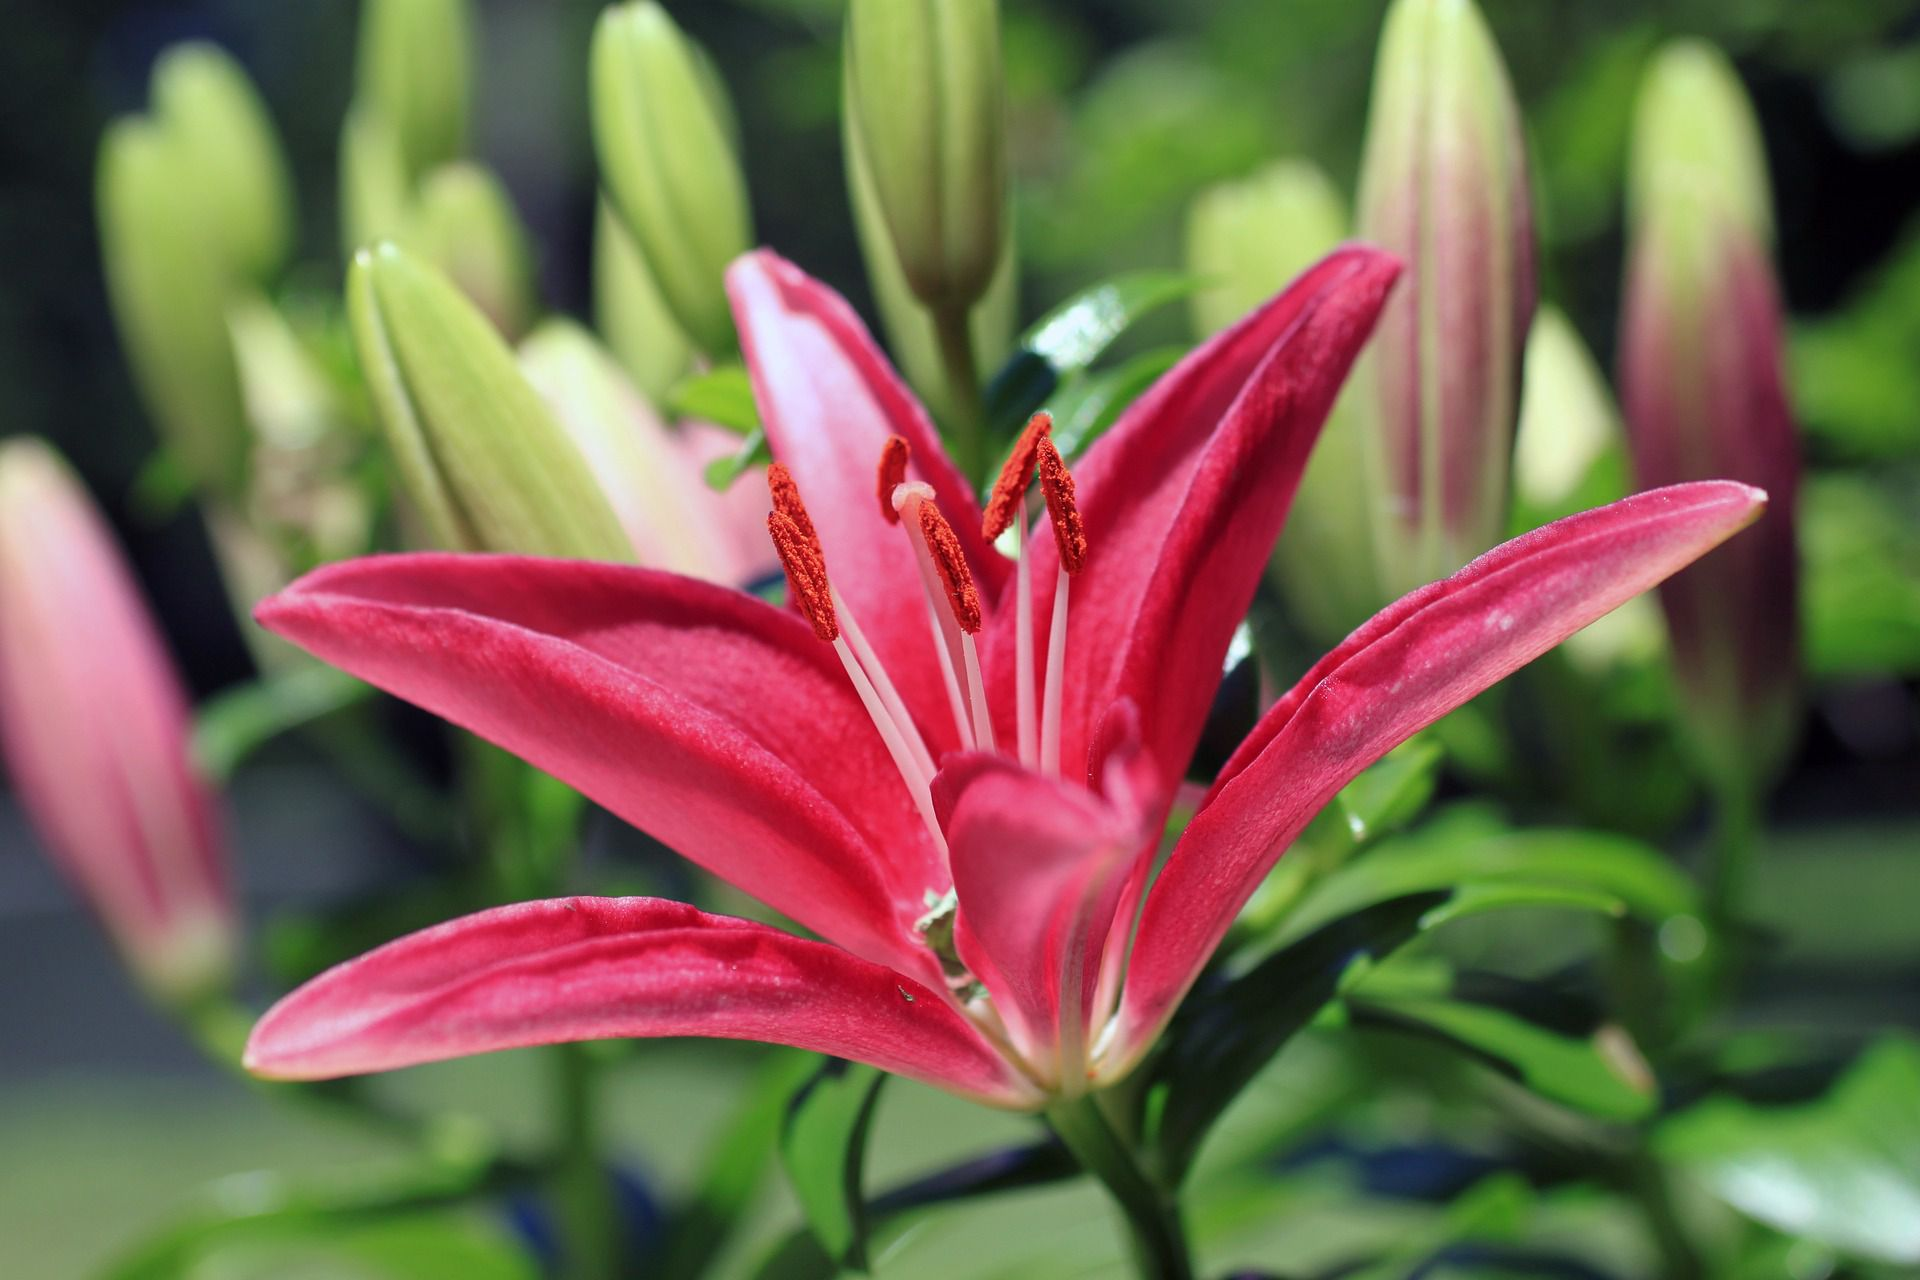 Stargazer lily care and growing tips dhlflorist Image collections